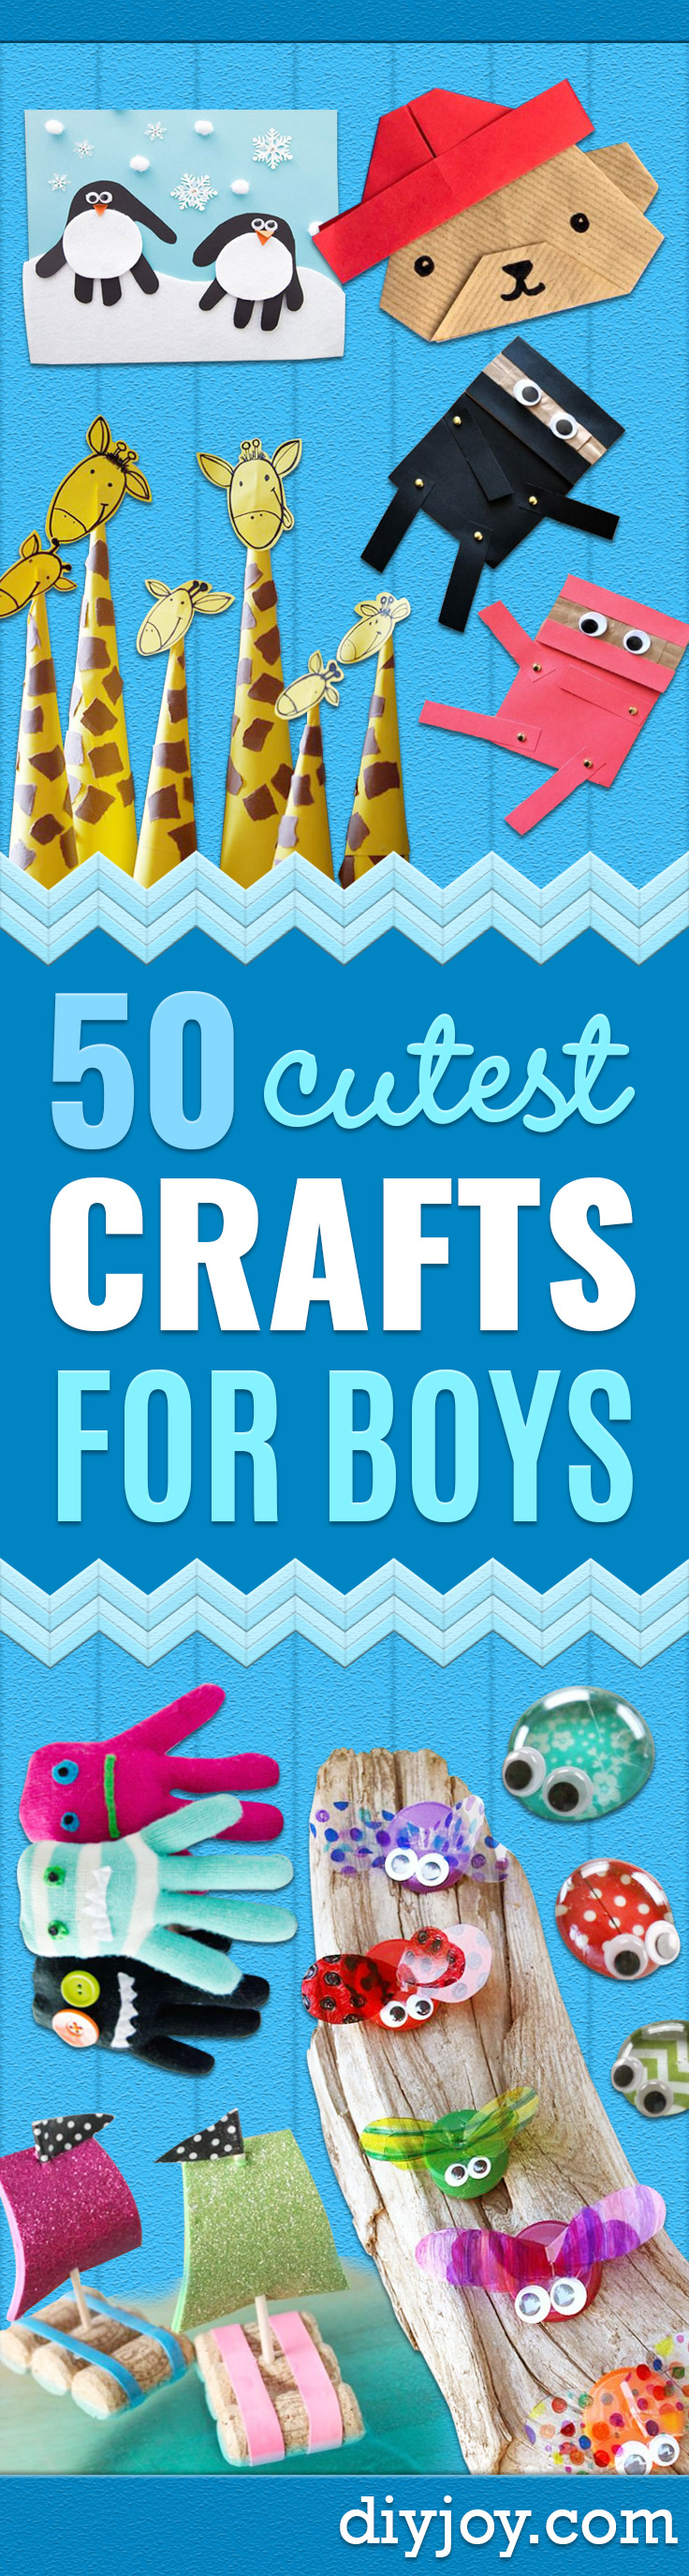 Crafts for Boys - Cute Crafts for Young Boys, Toddlers and School Children - Fun Paints to Make, Arts and Craft Ideas, Wall Art Projects, Colorful Alphabet and Glue Crafts, String Art, Painting Lessons, Cheap Project Tutorials and Inexpensive Things for Kids to Make at Home - Cute Room Decor and DIY Gifts to Make for Mom and Dad